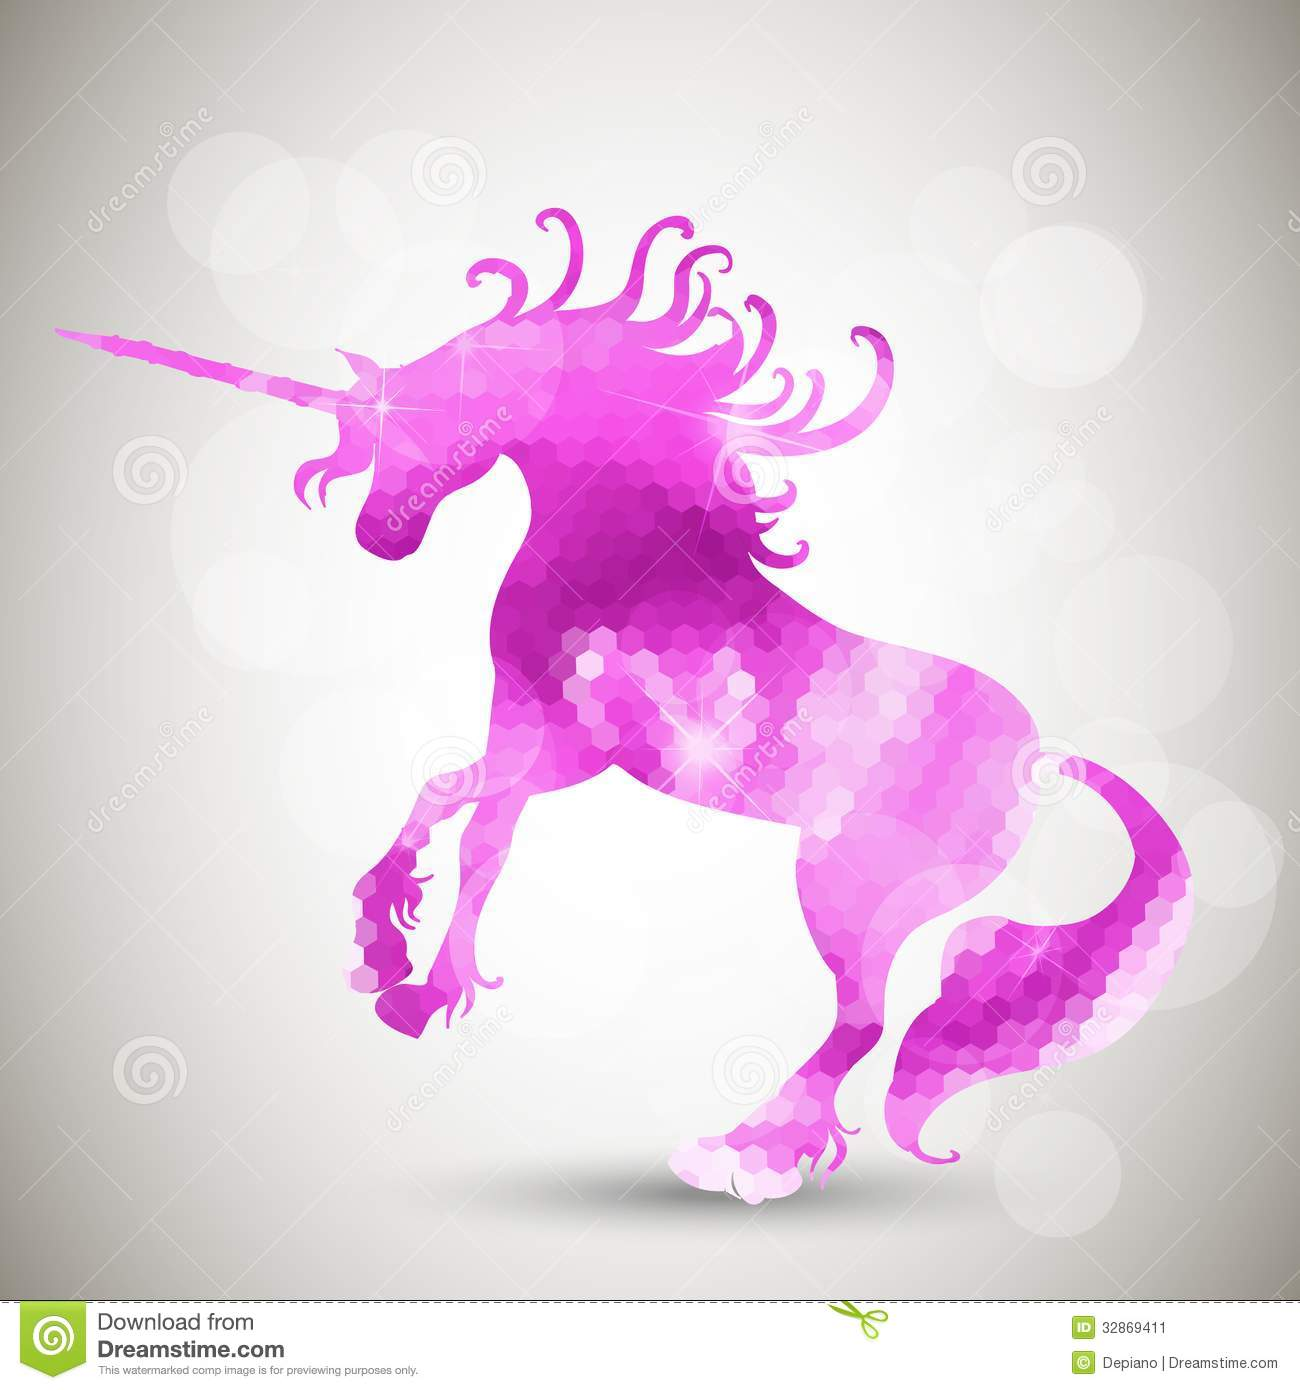 Abstract Geometric Background With Unicorn Stock Image